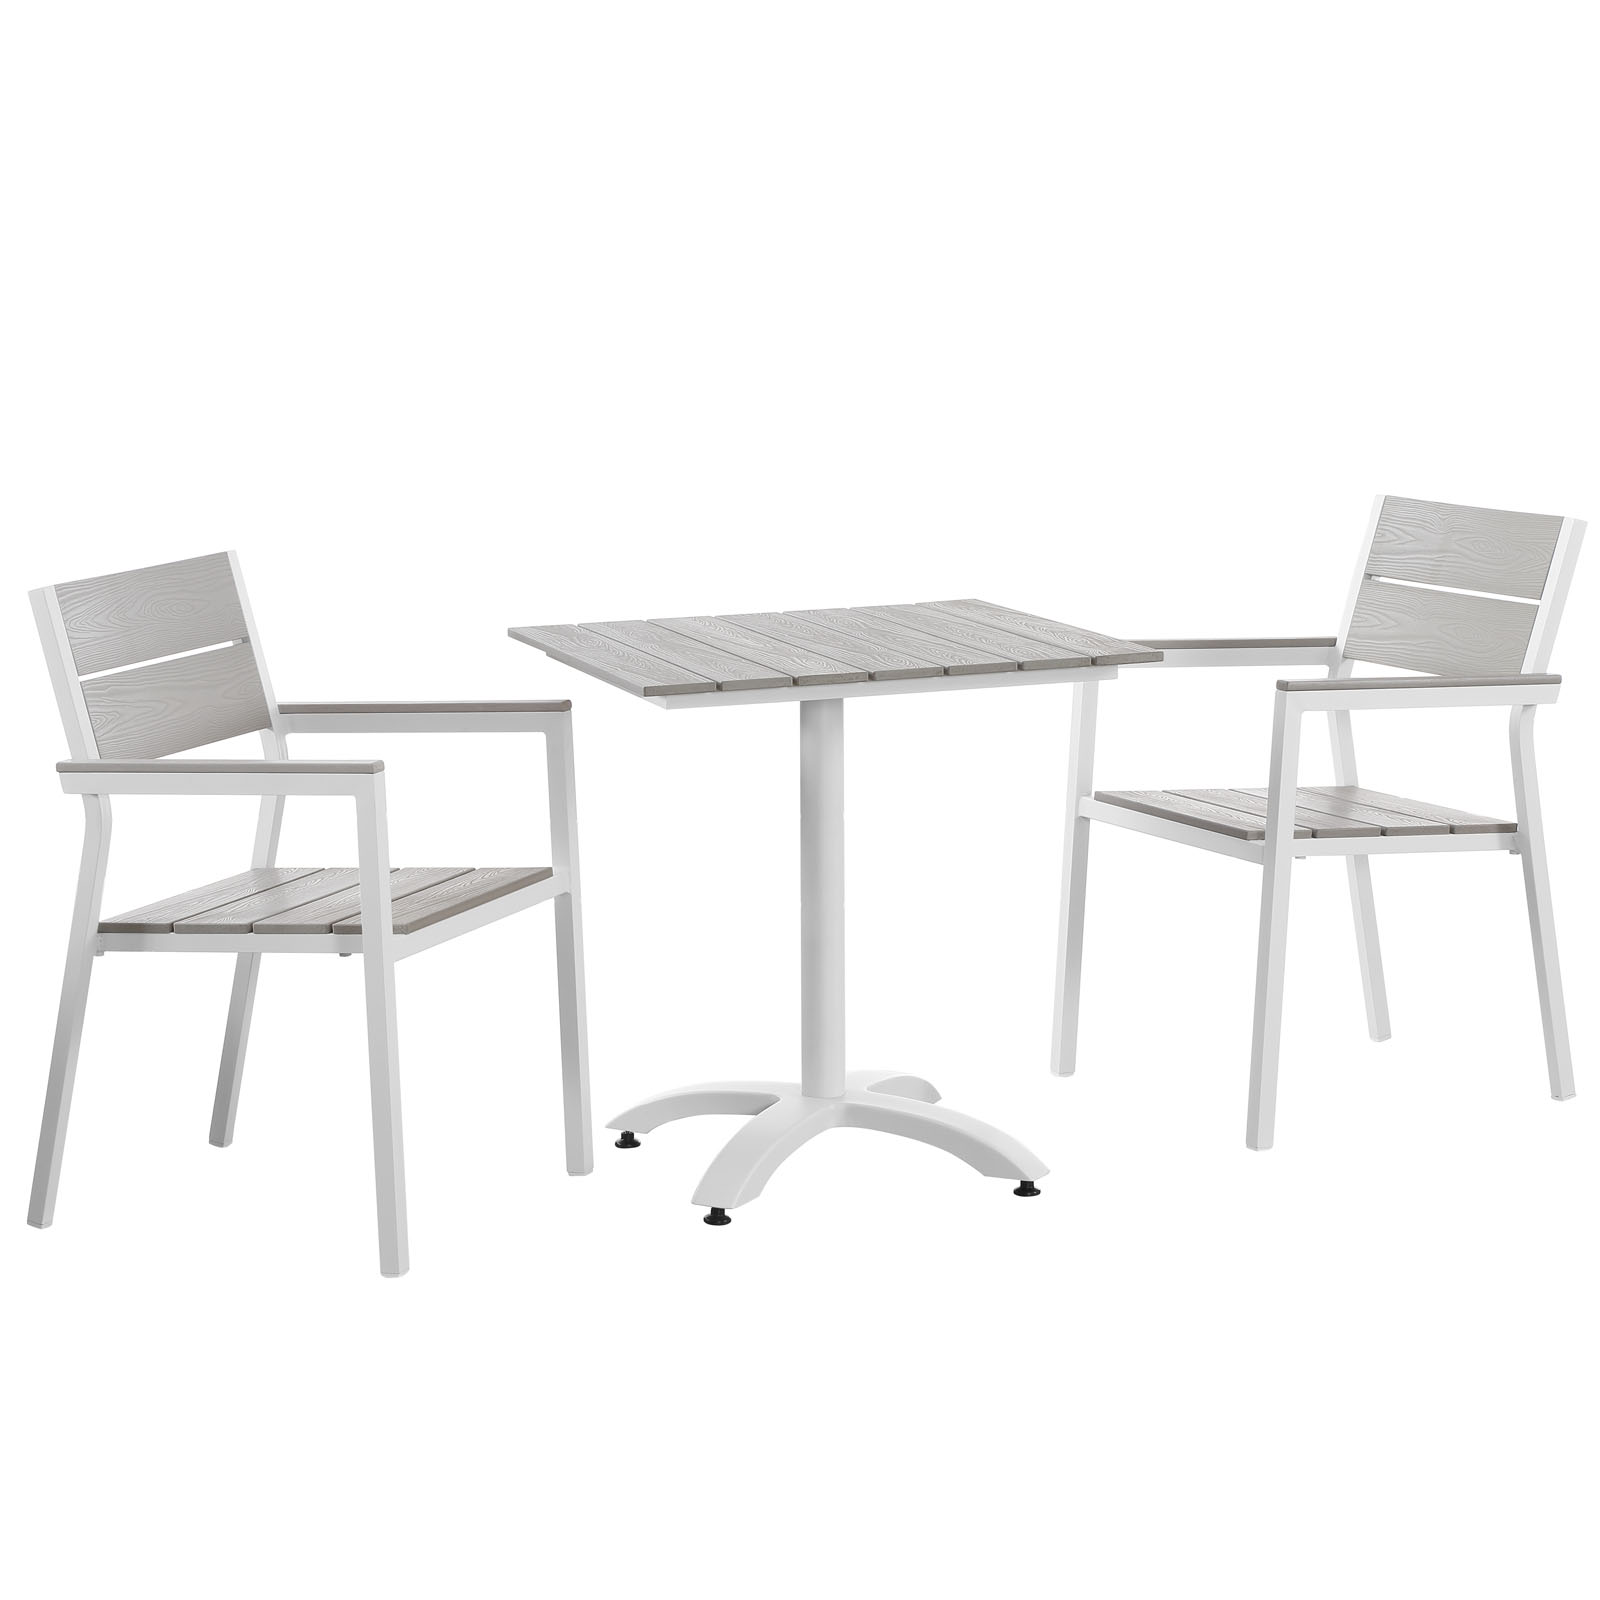 Modern Urban Contemporary 3 pcs Outdoor Patio Dining Room Set, White Light Grey Steel by